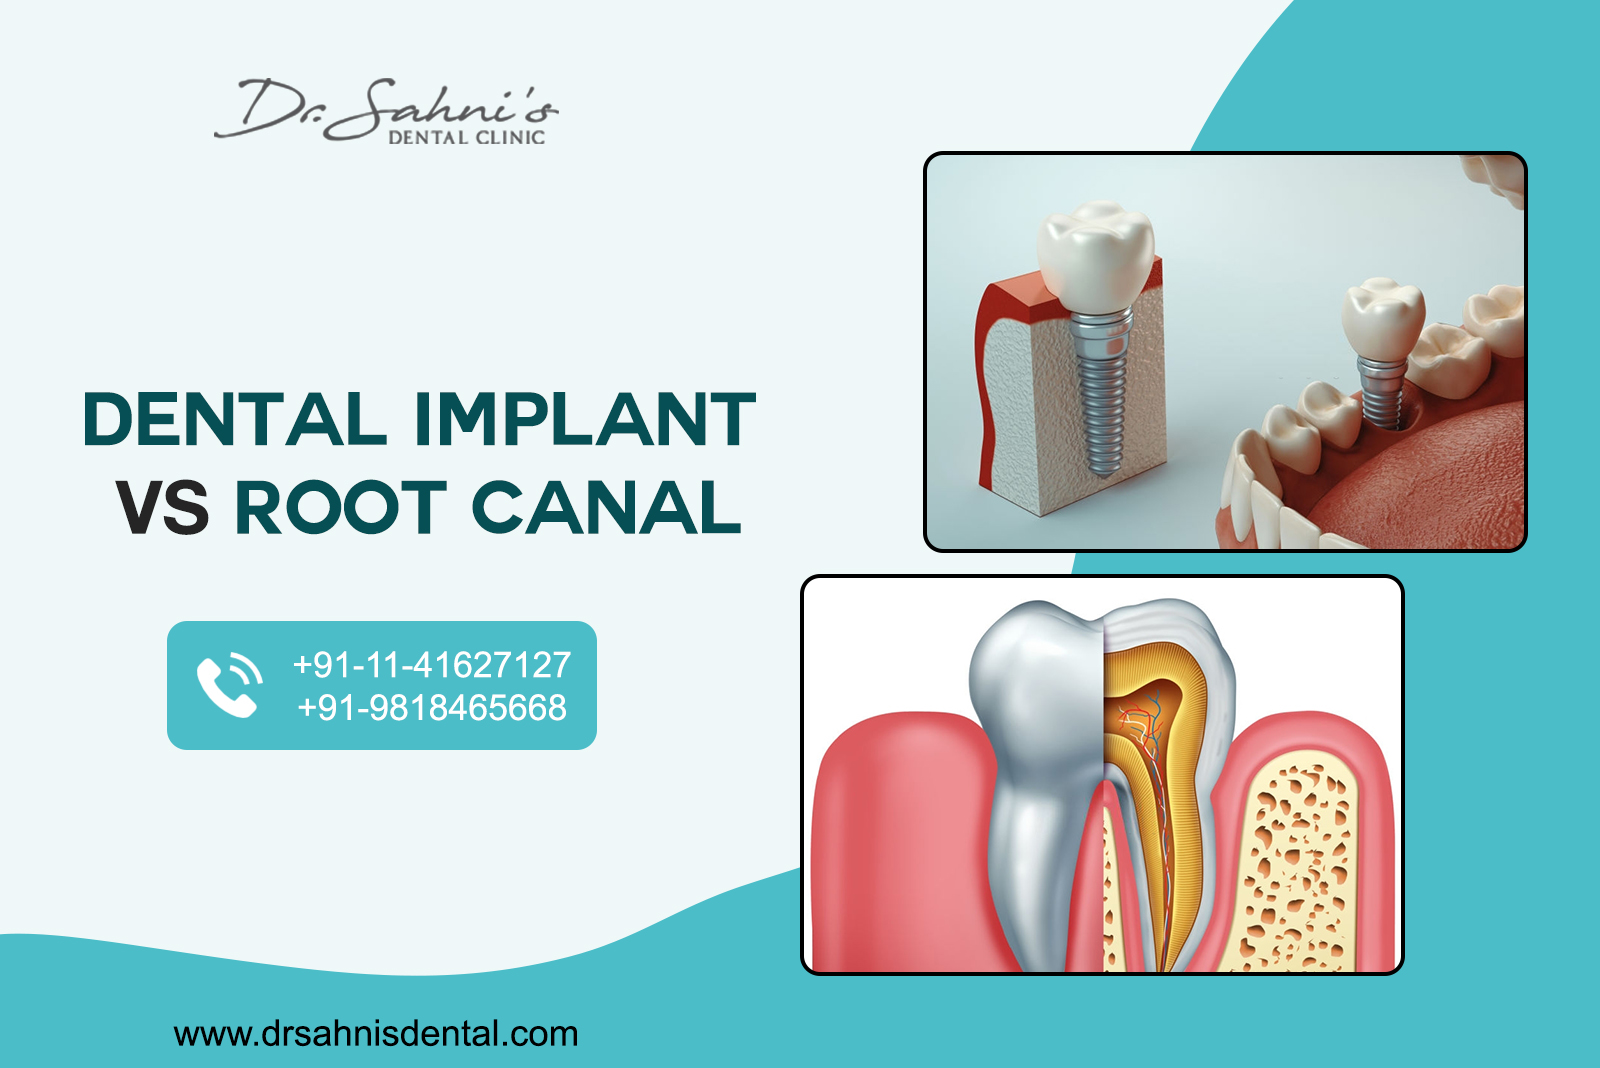 Dental Implant or Root Canal